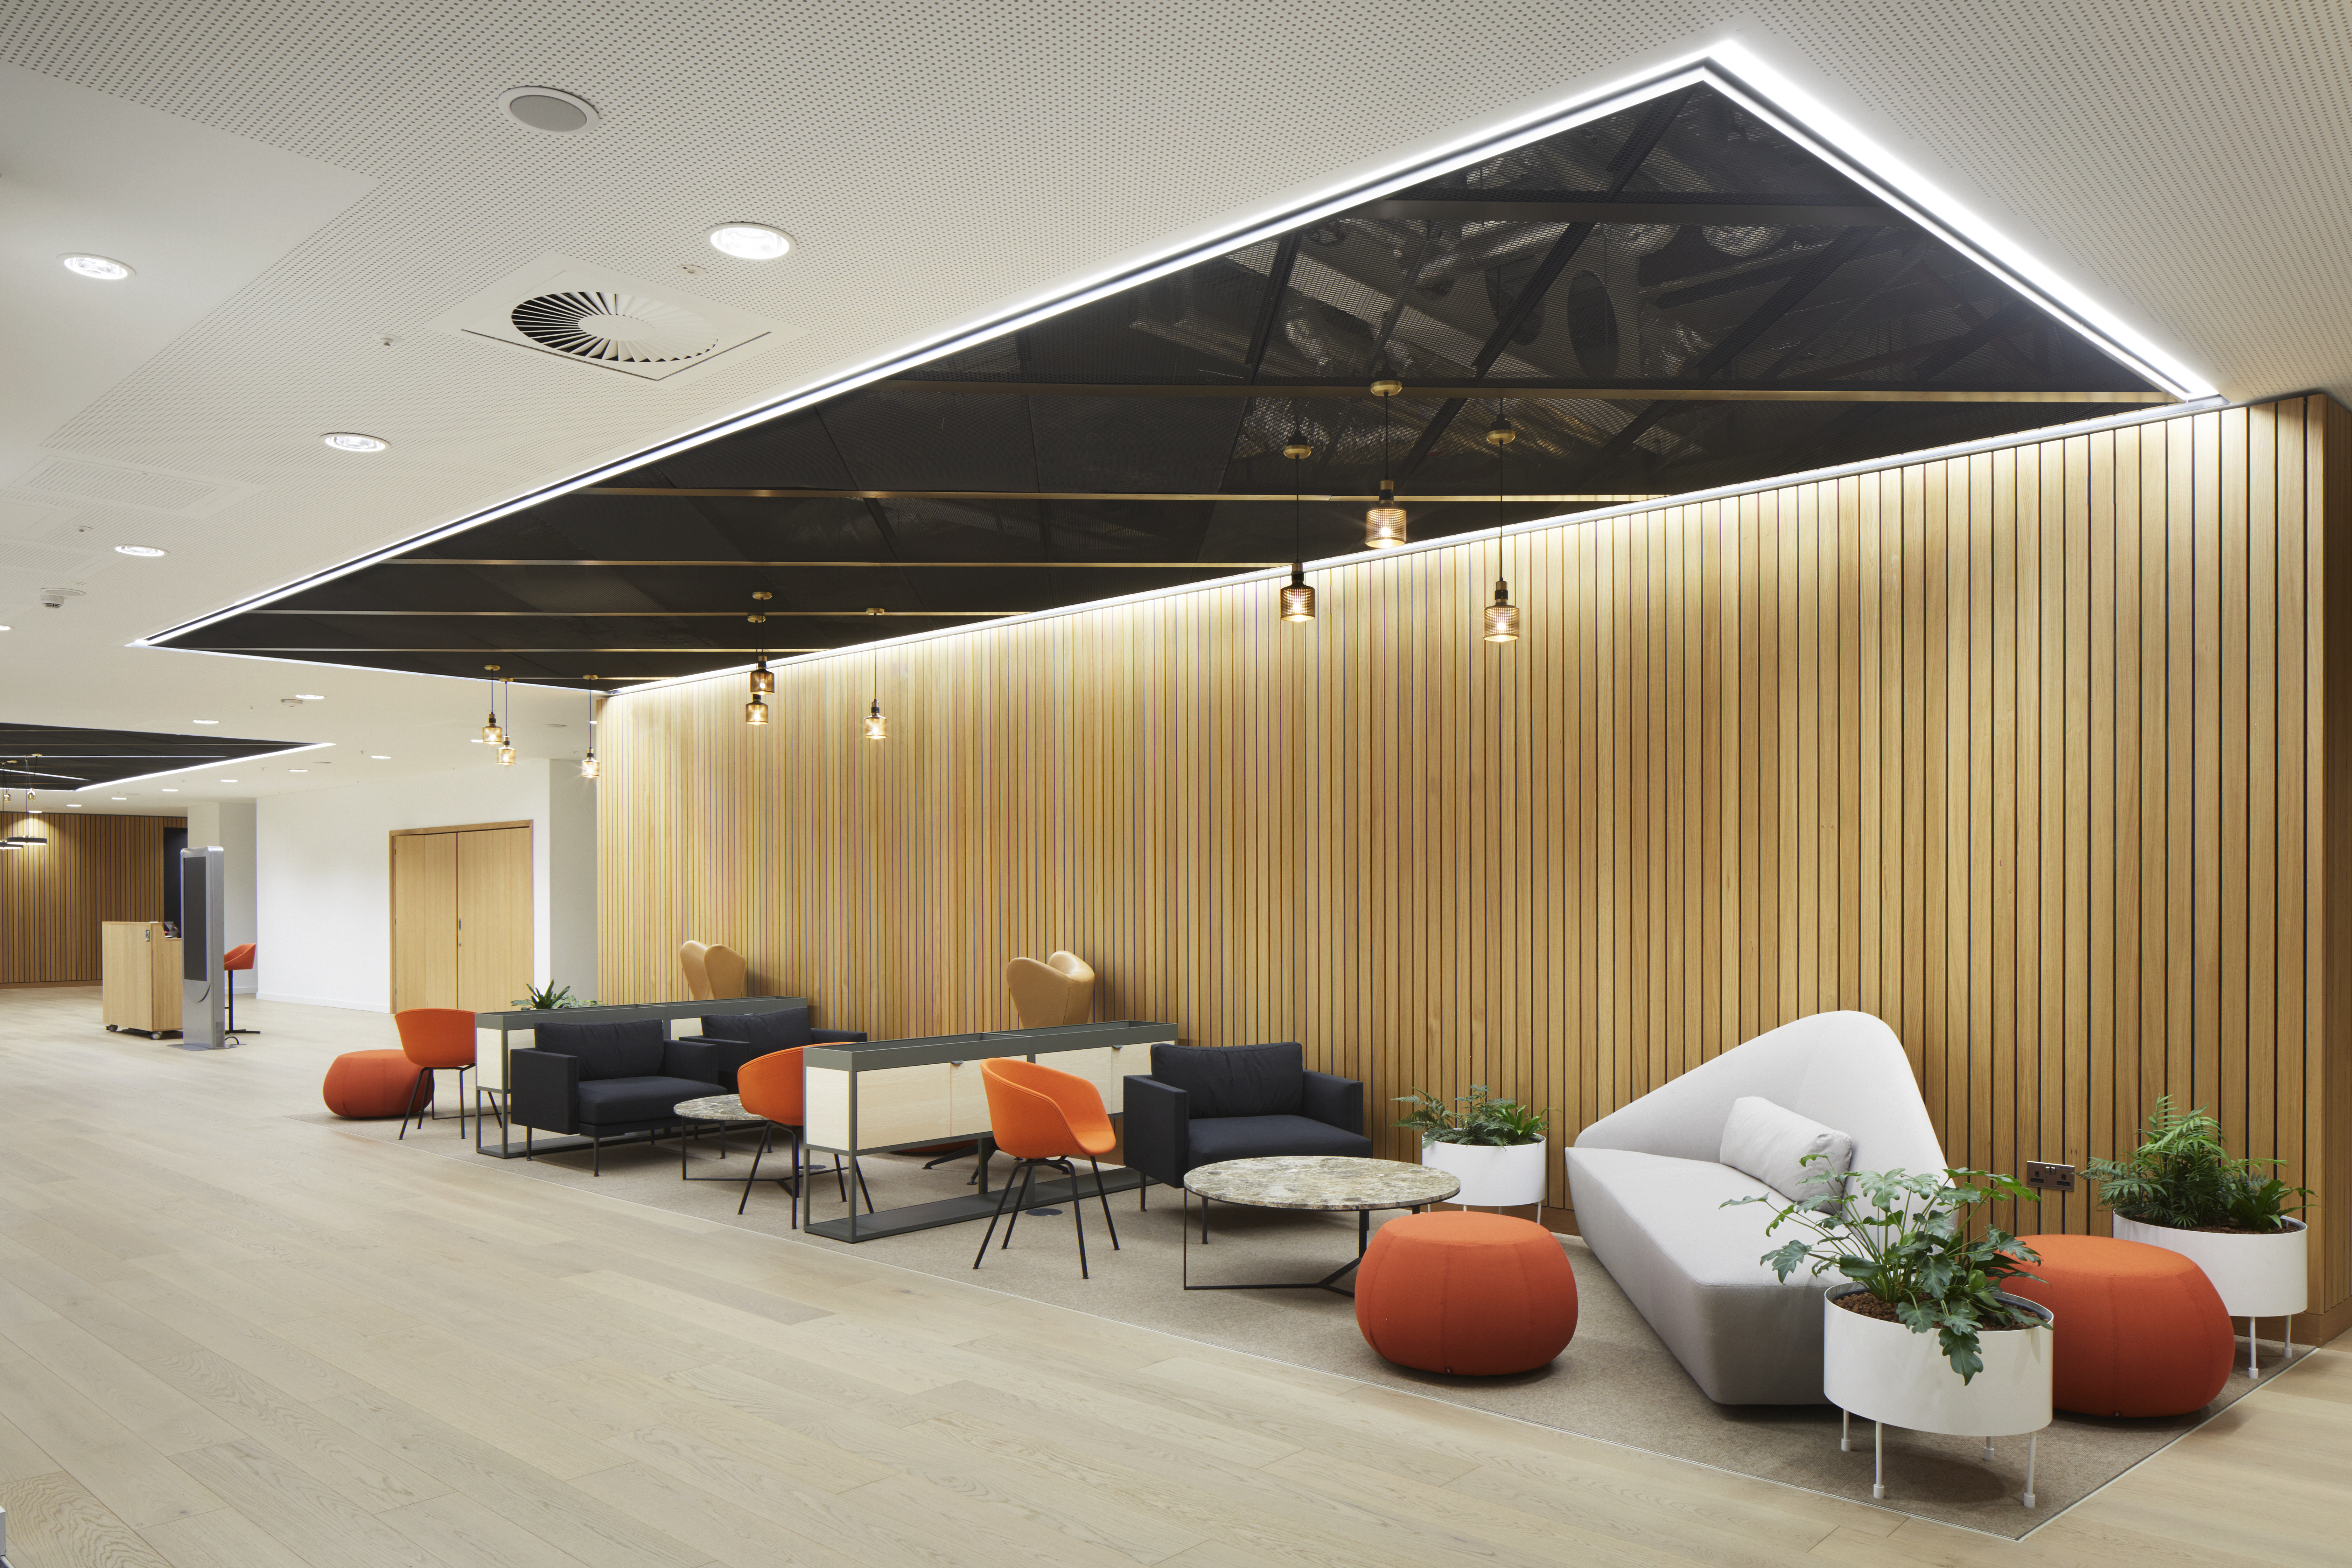 Armstrong Ceilings were an architect's trusted choice for a banking icon